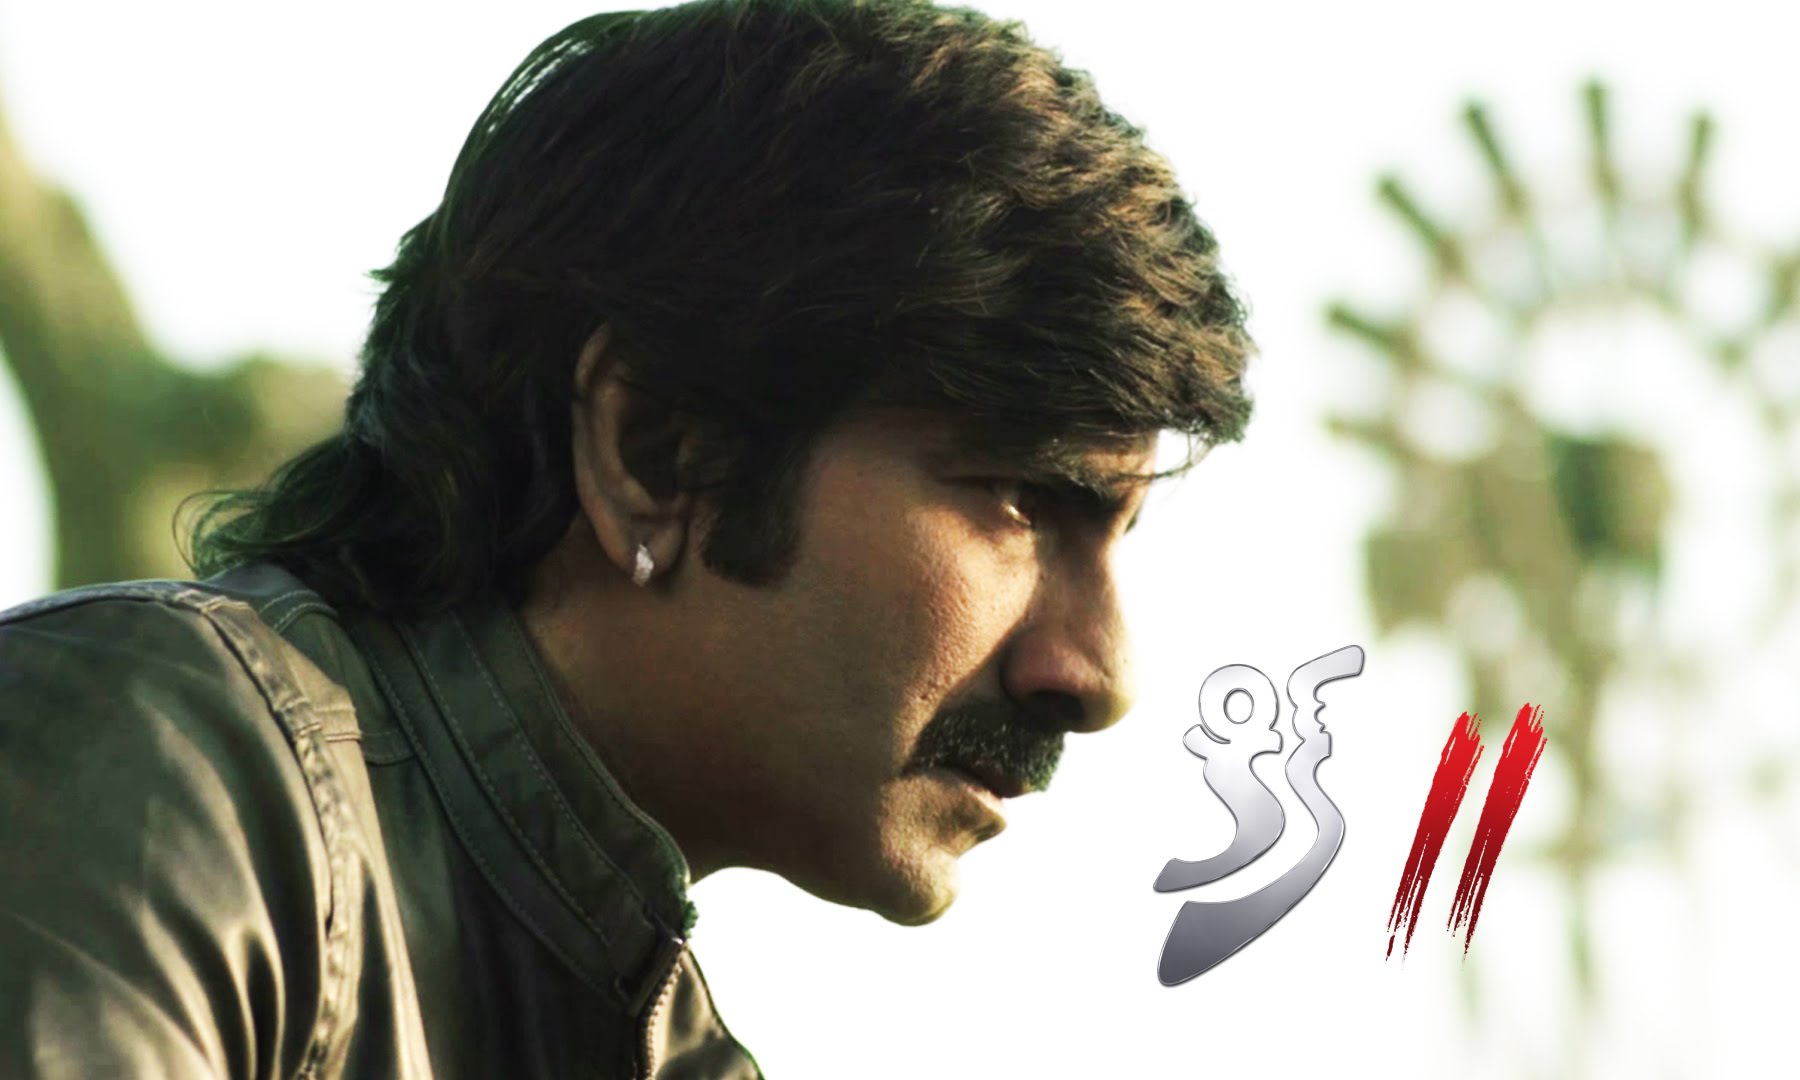 Kick 2 (Telugu) Movie Details: Ft. Ravi Teja & Rakul Preet Singh, Releasing on 21st August